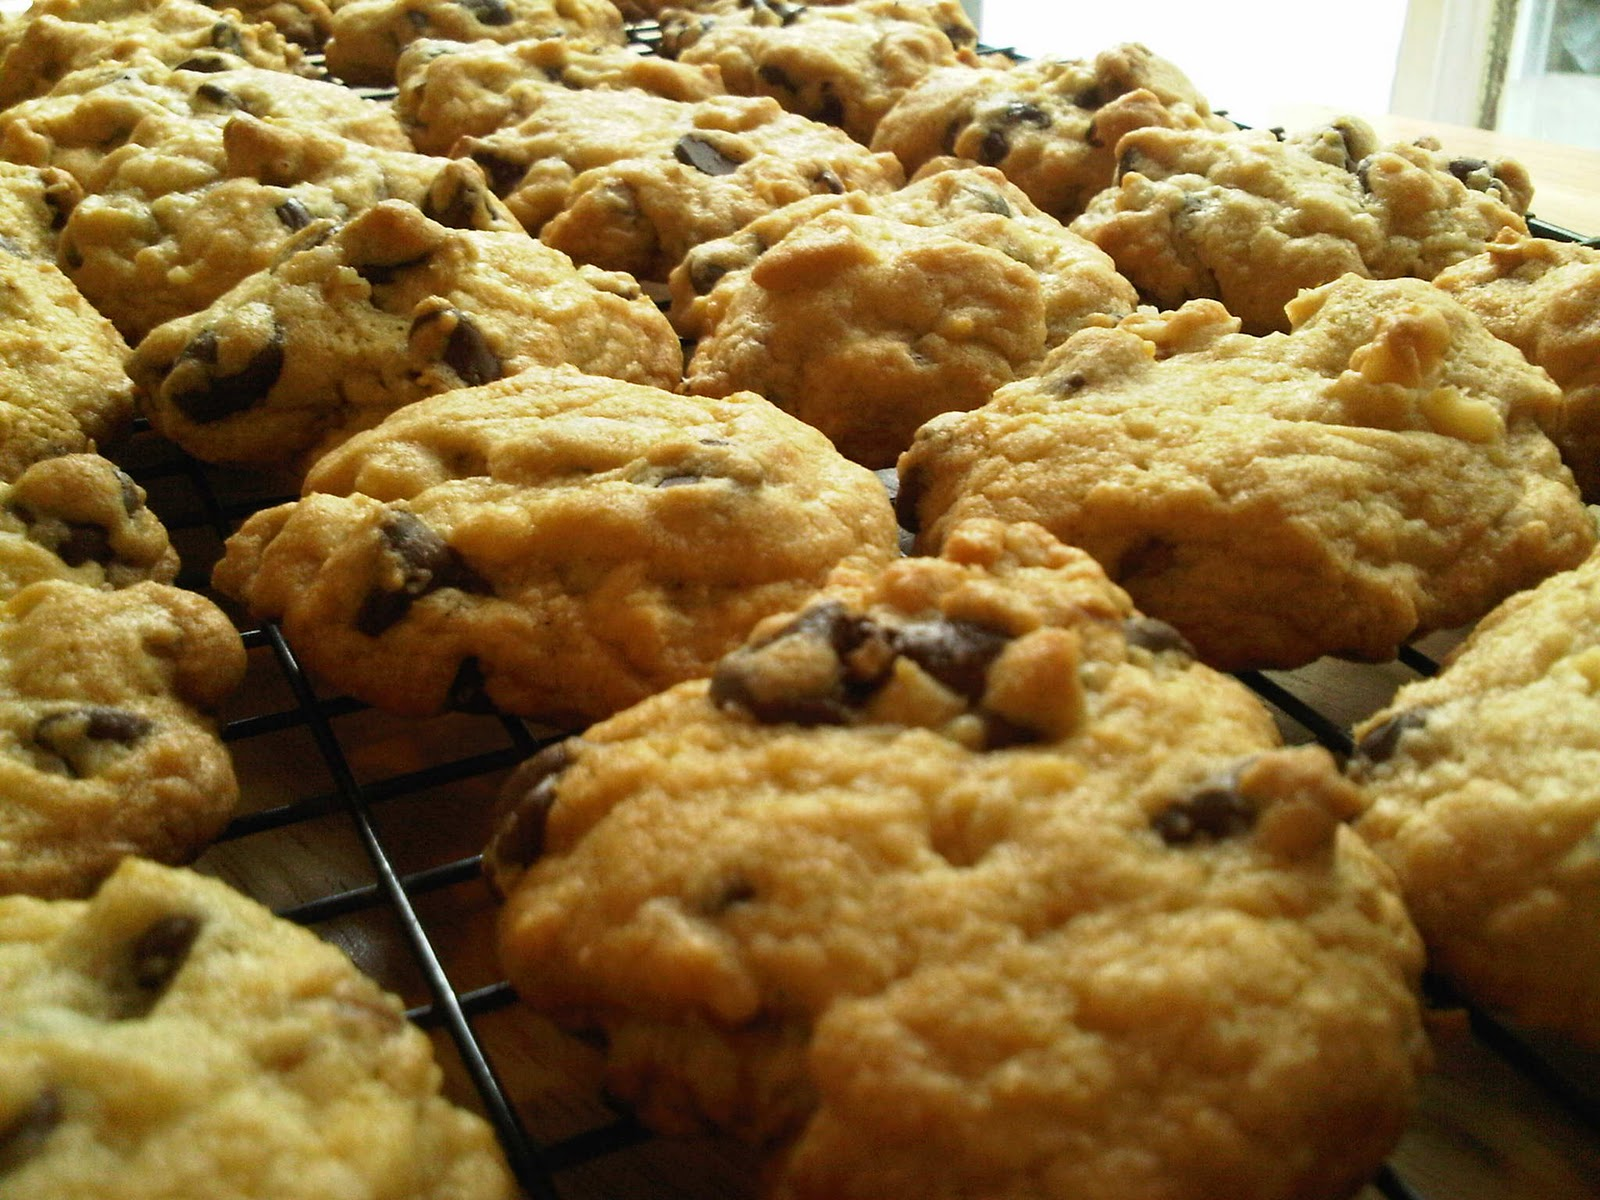 Oasis in a gastronomic wasteland recipes jack daniels chocolate recipes jack daniels chocolate chip cookies forumfinder Images